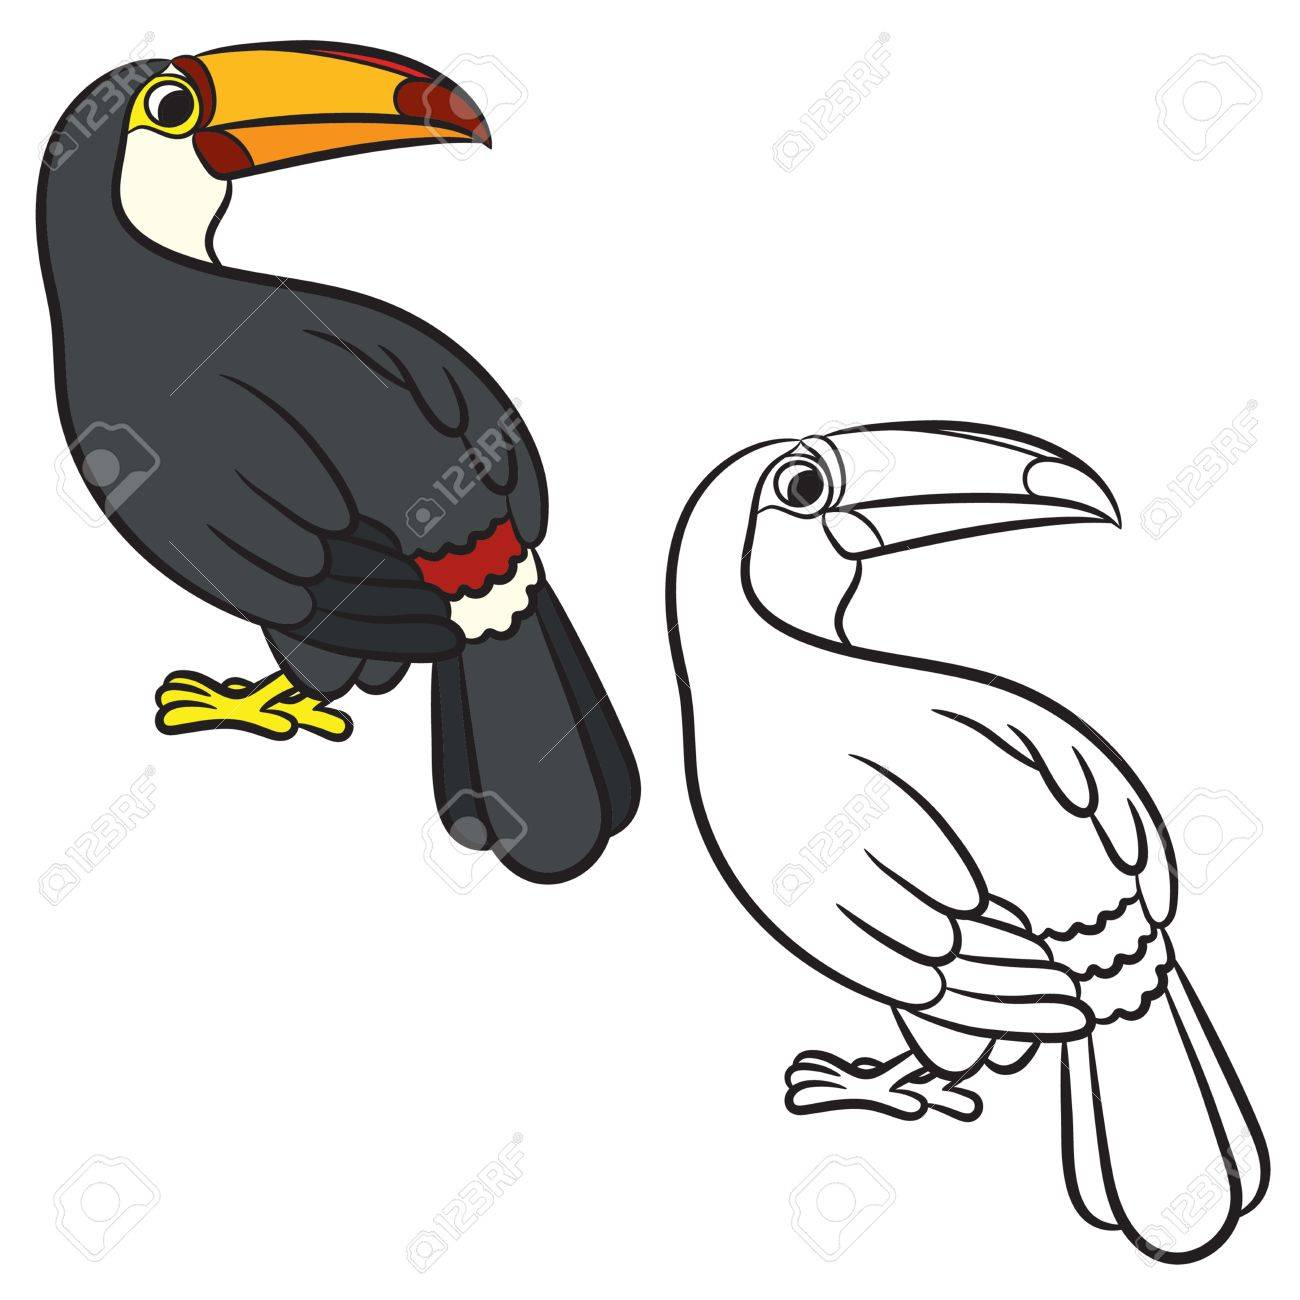 Toucan Coloring Pages - Best Coloring Pages For Kids | 1300x1300